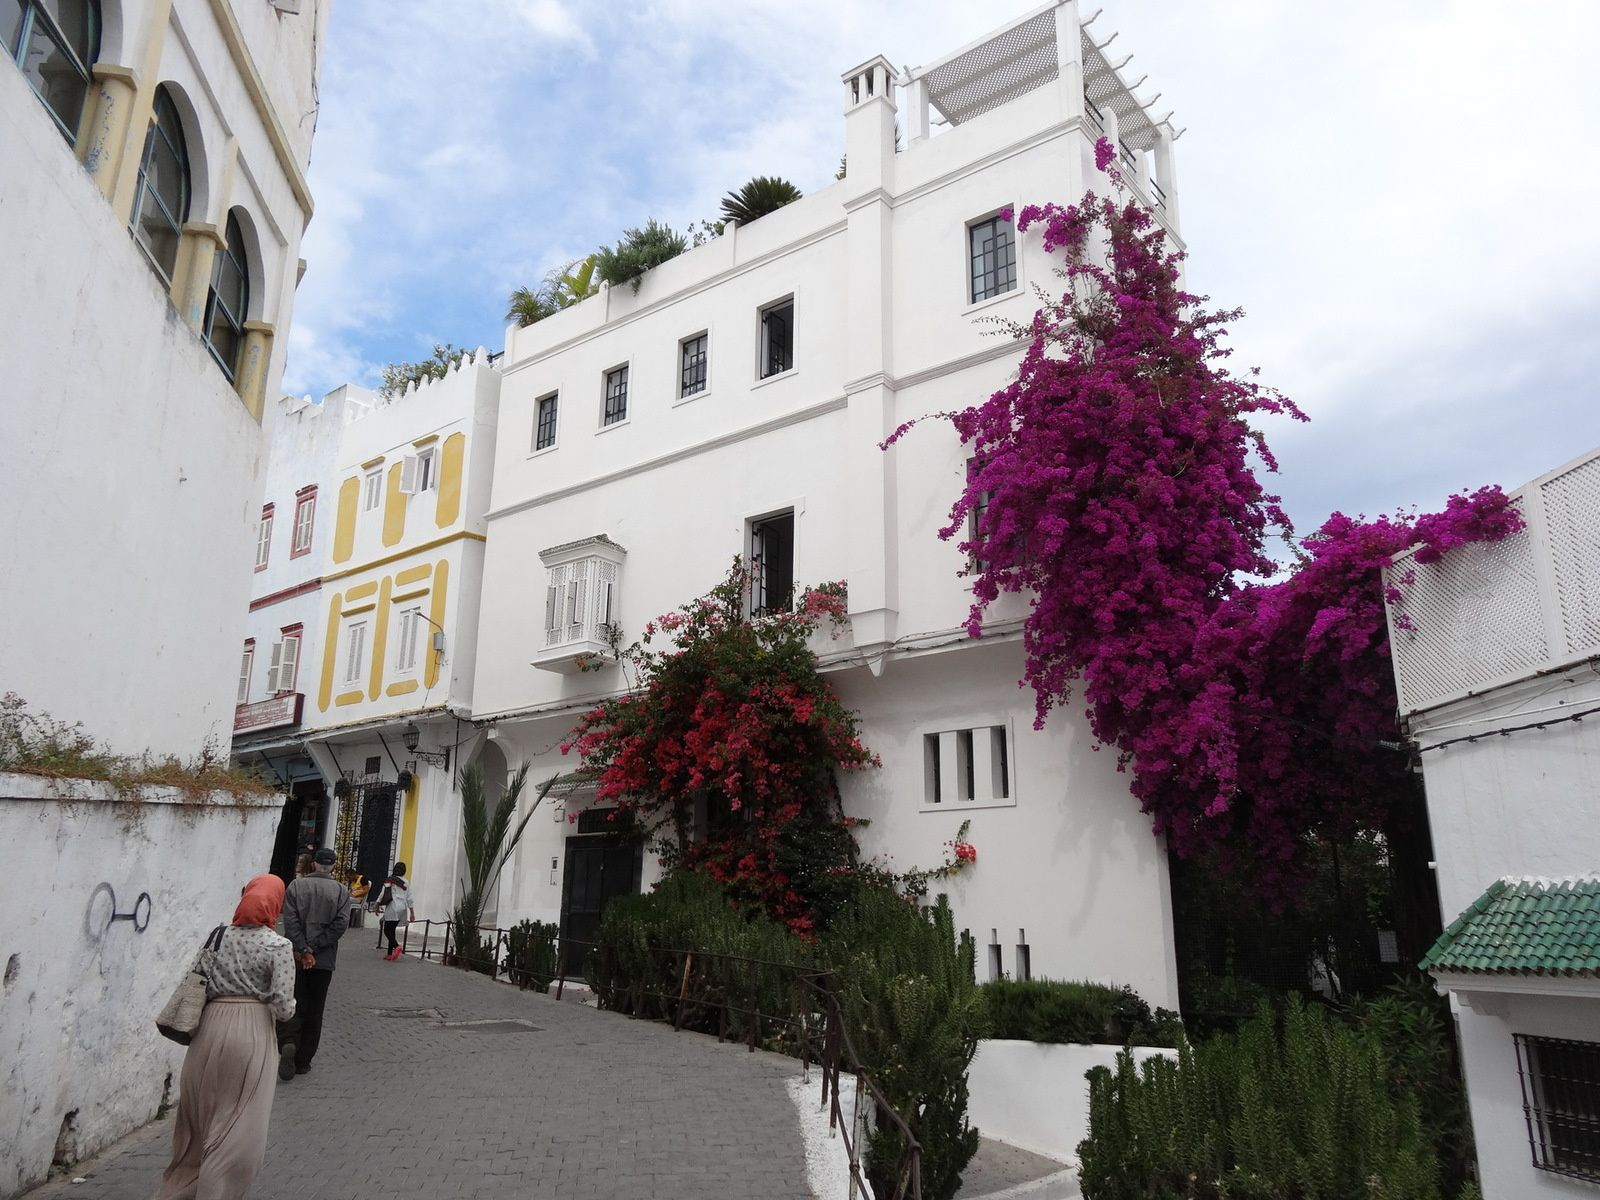 Barbara Hutton's mansion in Tangier, Morocco./Ph. DR